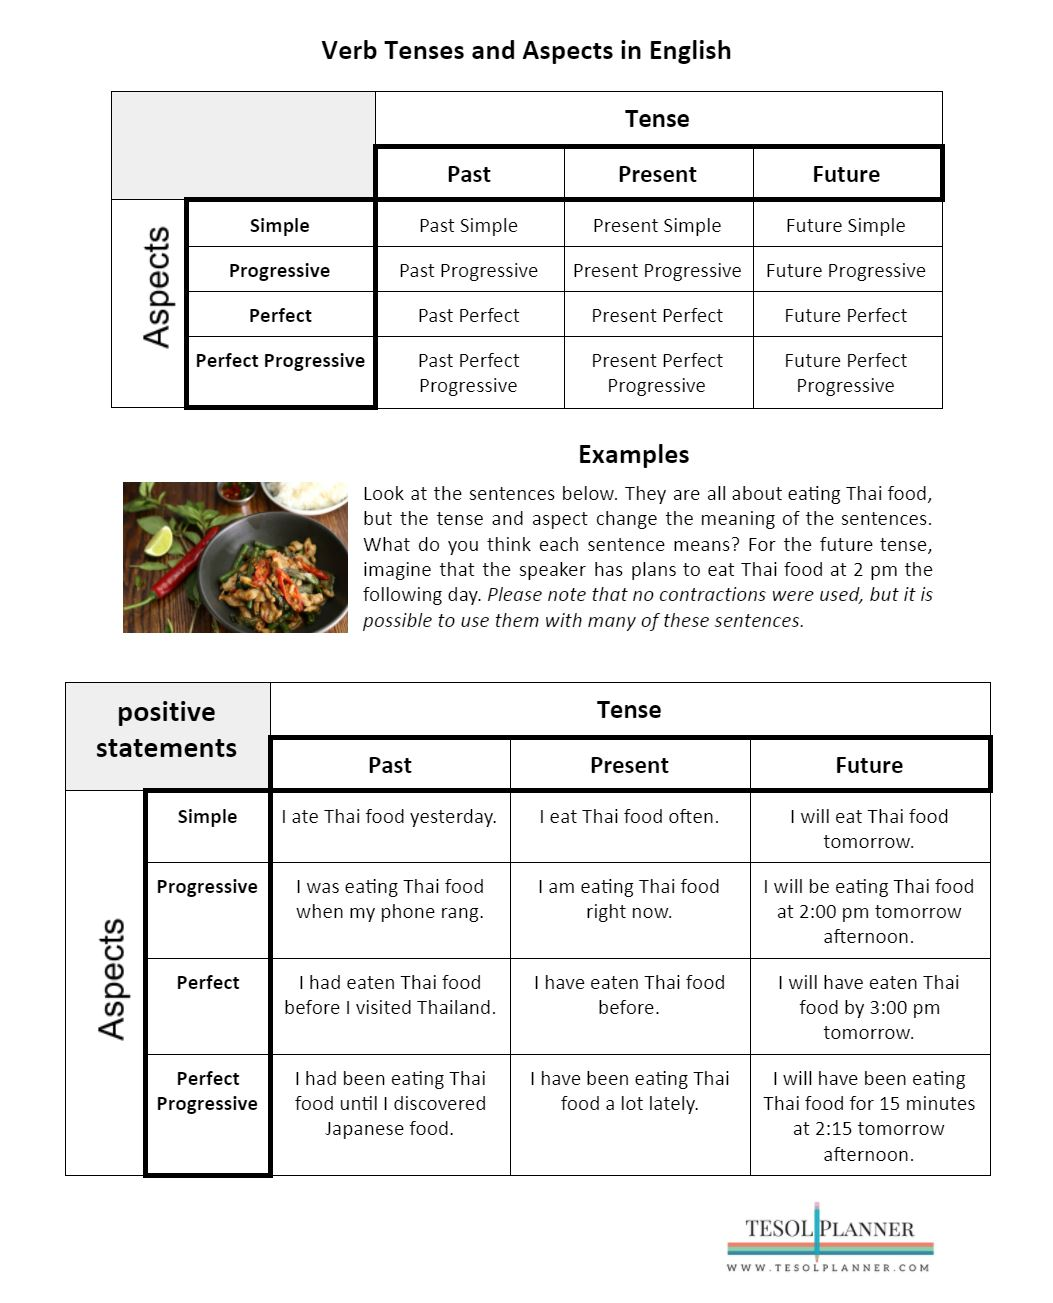 English Verb Tenses And Aspects Handout